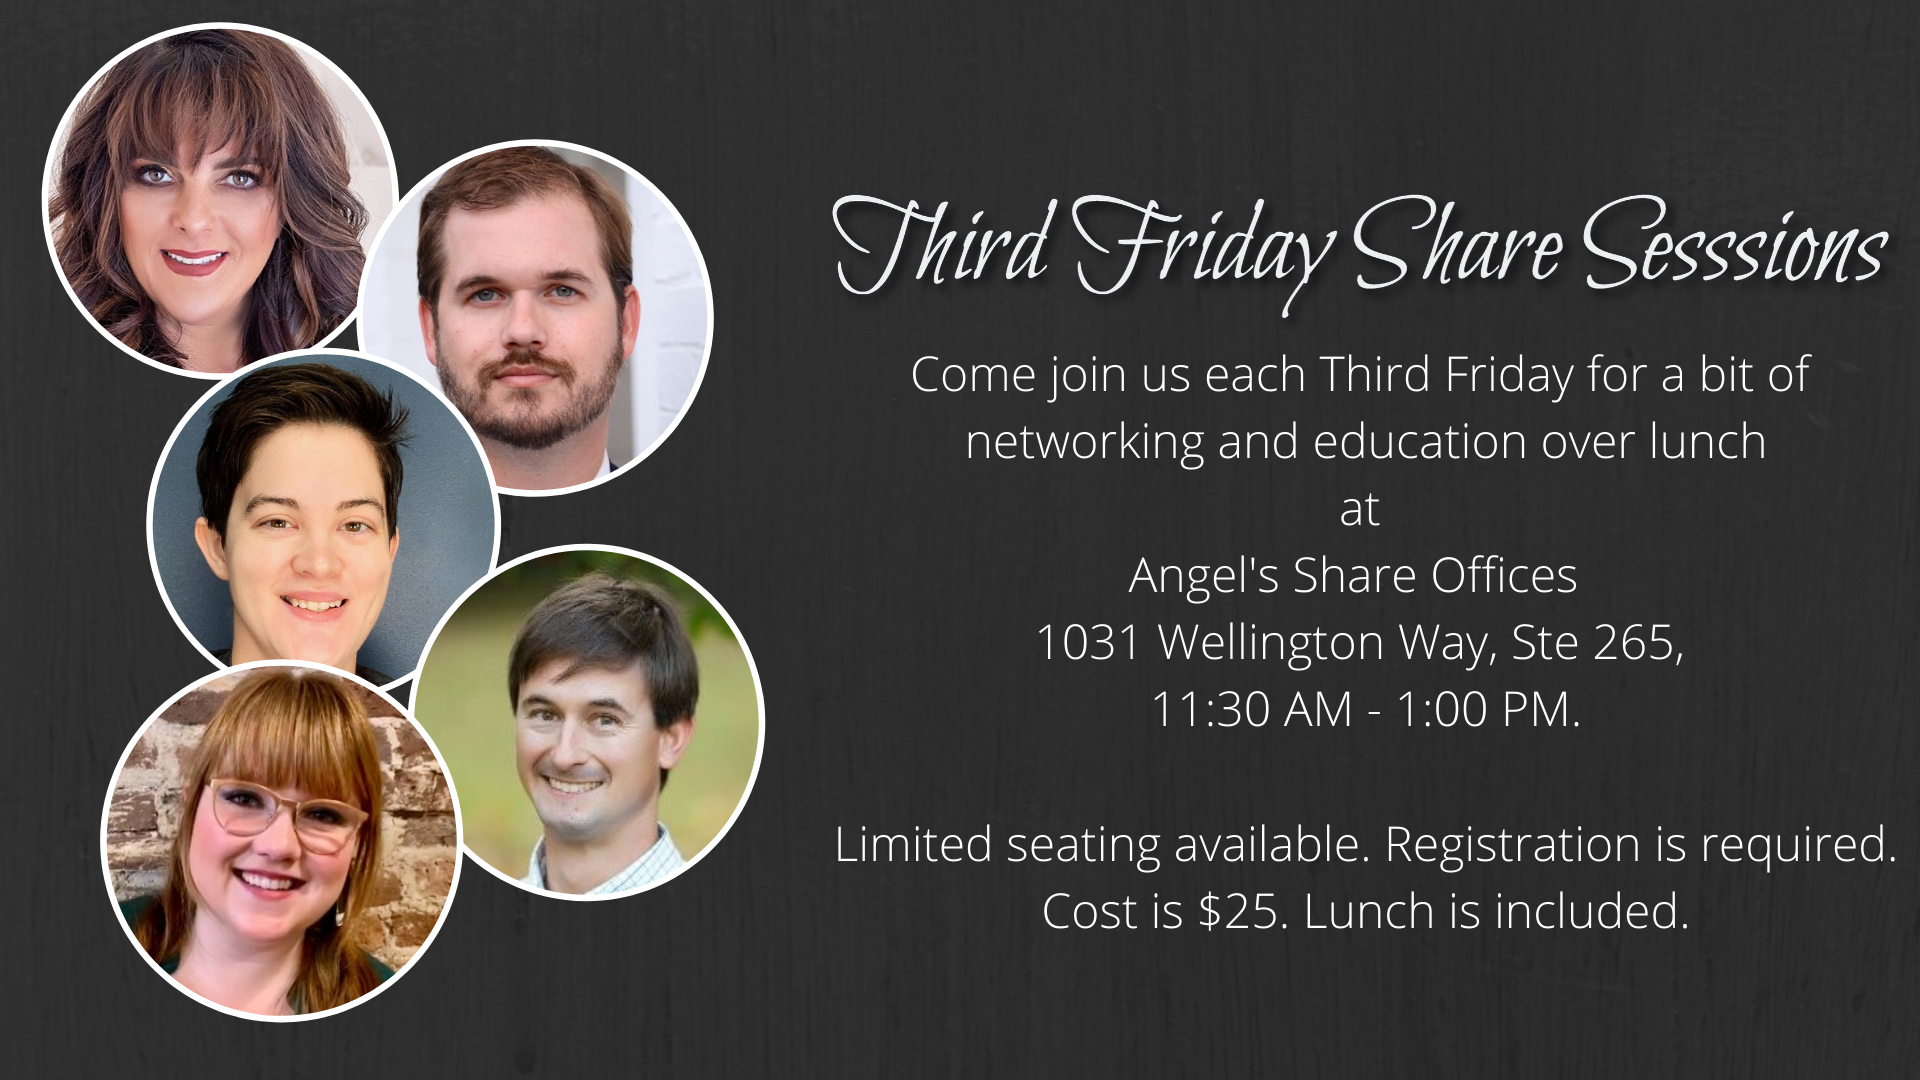 Come join us each Third Friday for a bit of networking and education over lunch. Each session will be held at Angel's Share Office's conference room, 11:30 AM - 1:00 PM. Limited seating available. Registration is required. Cost is $25. Lunch is included.